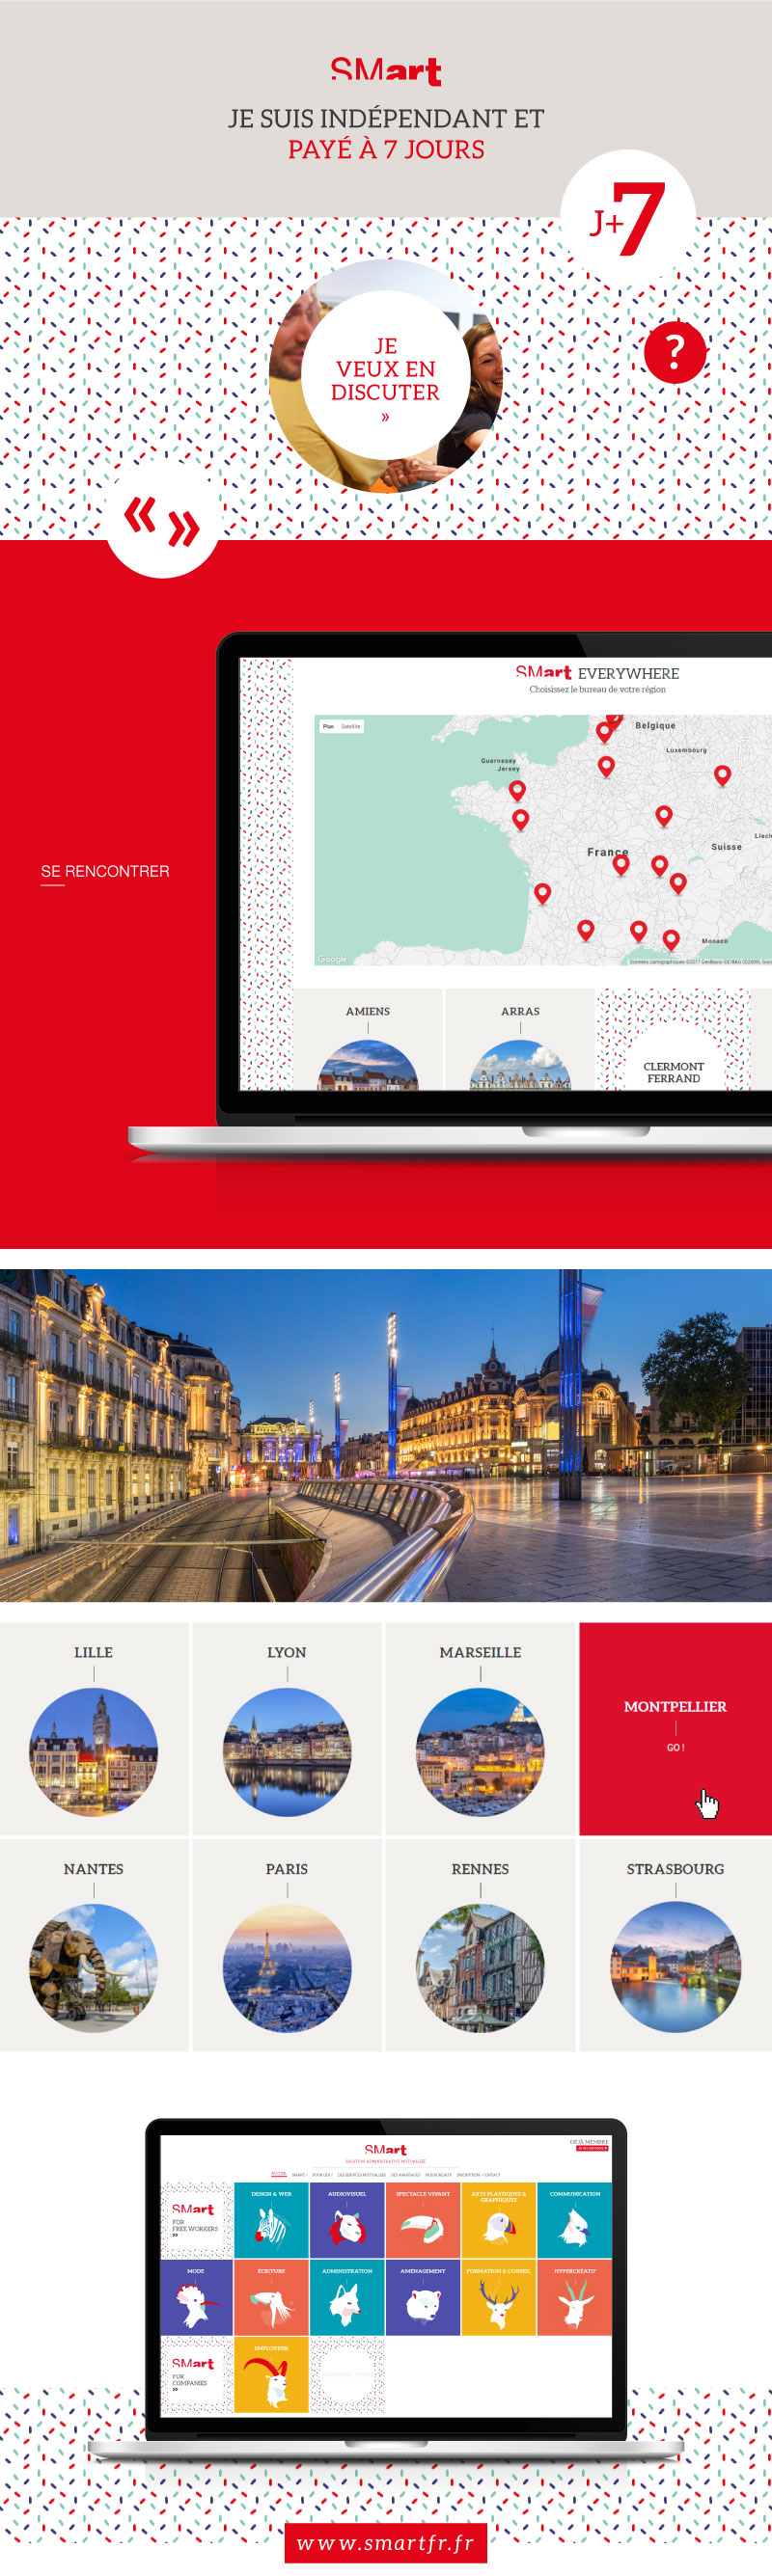 smart-webdesign-charte-site-web